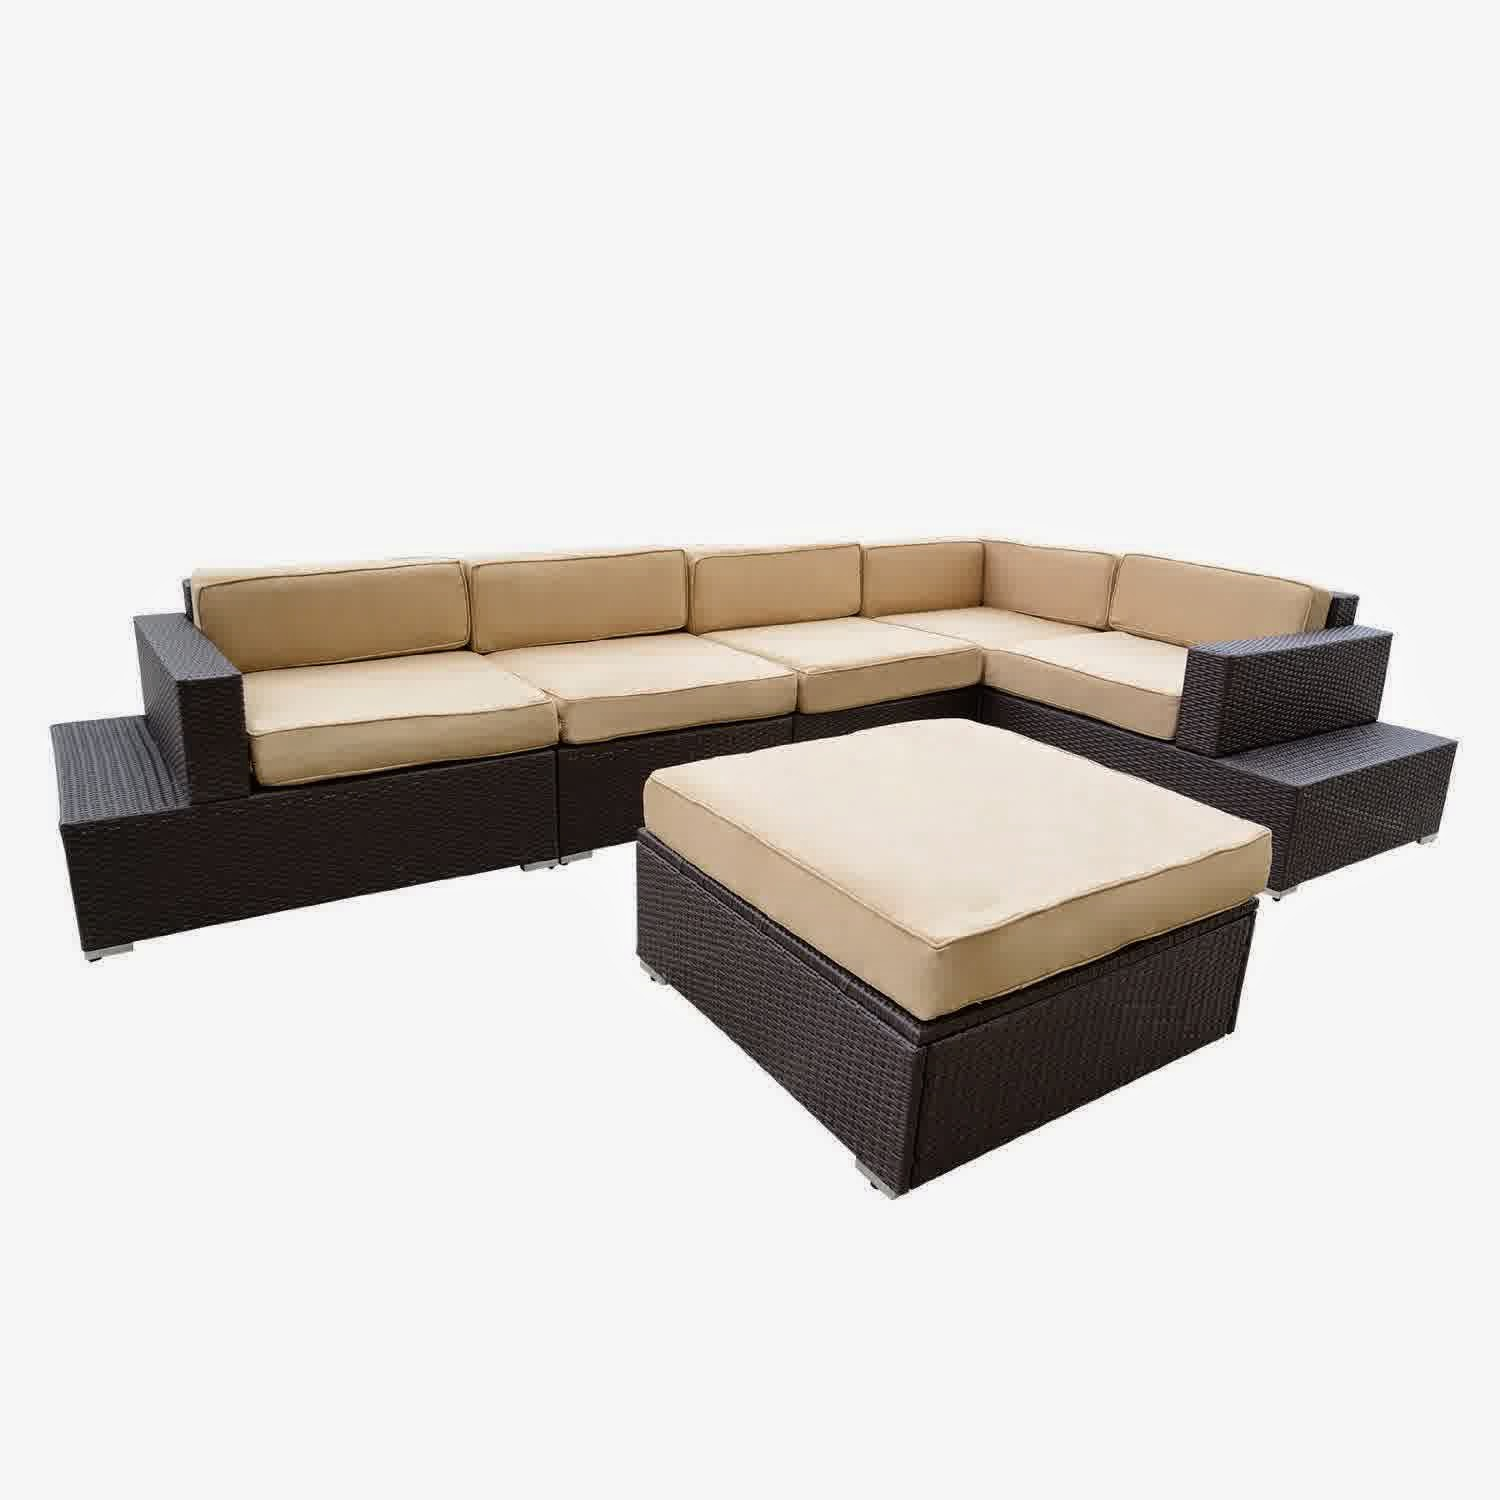 rattan outdoor sofa one armed big sale discount 50 patio wicker